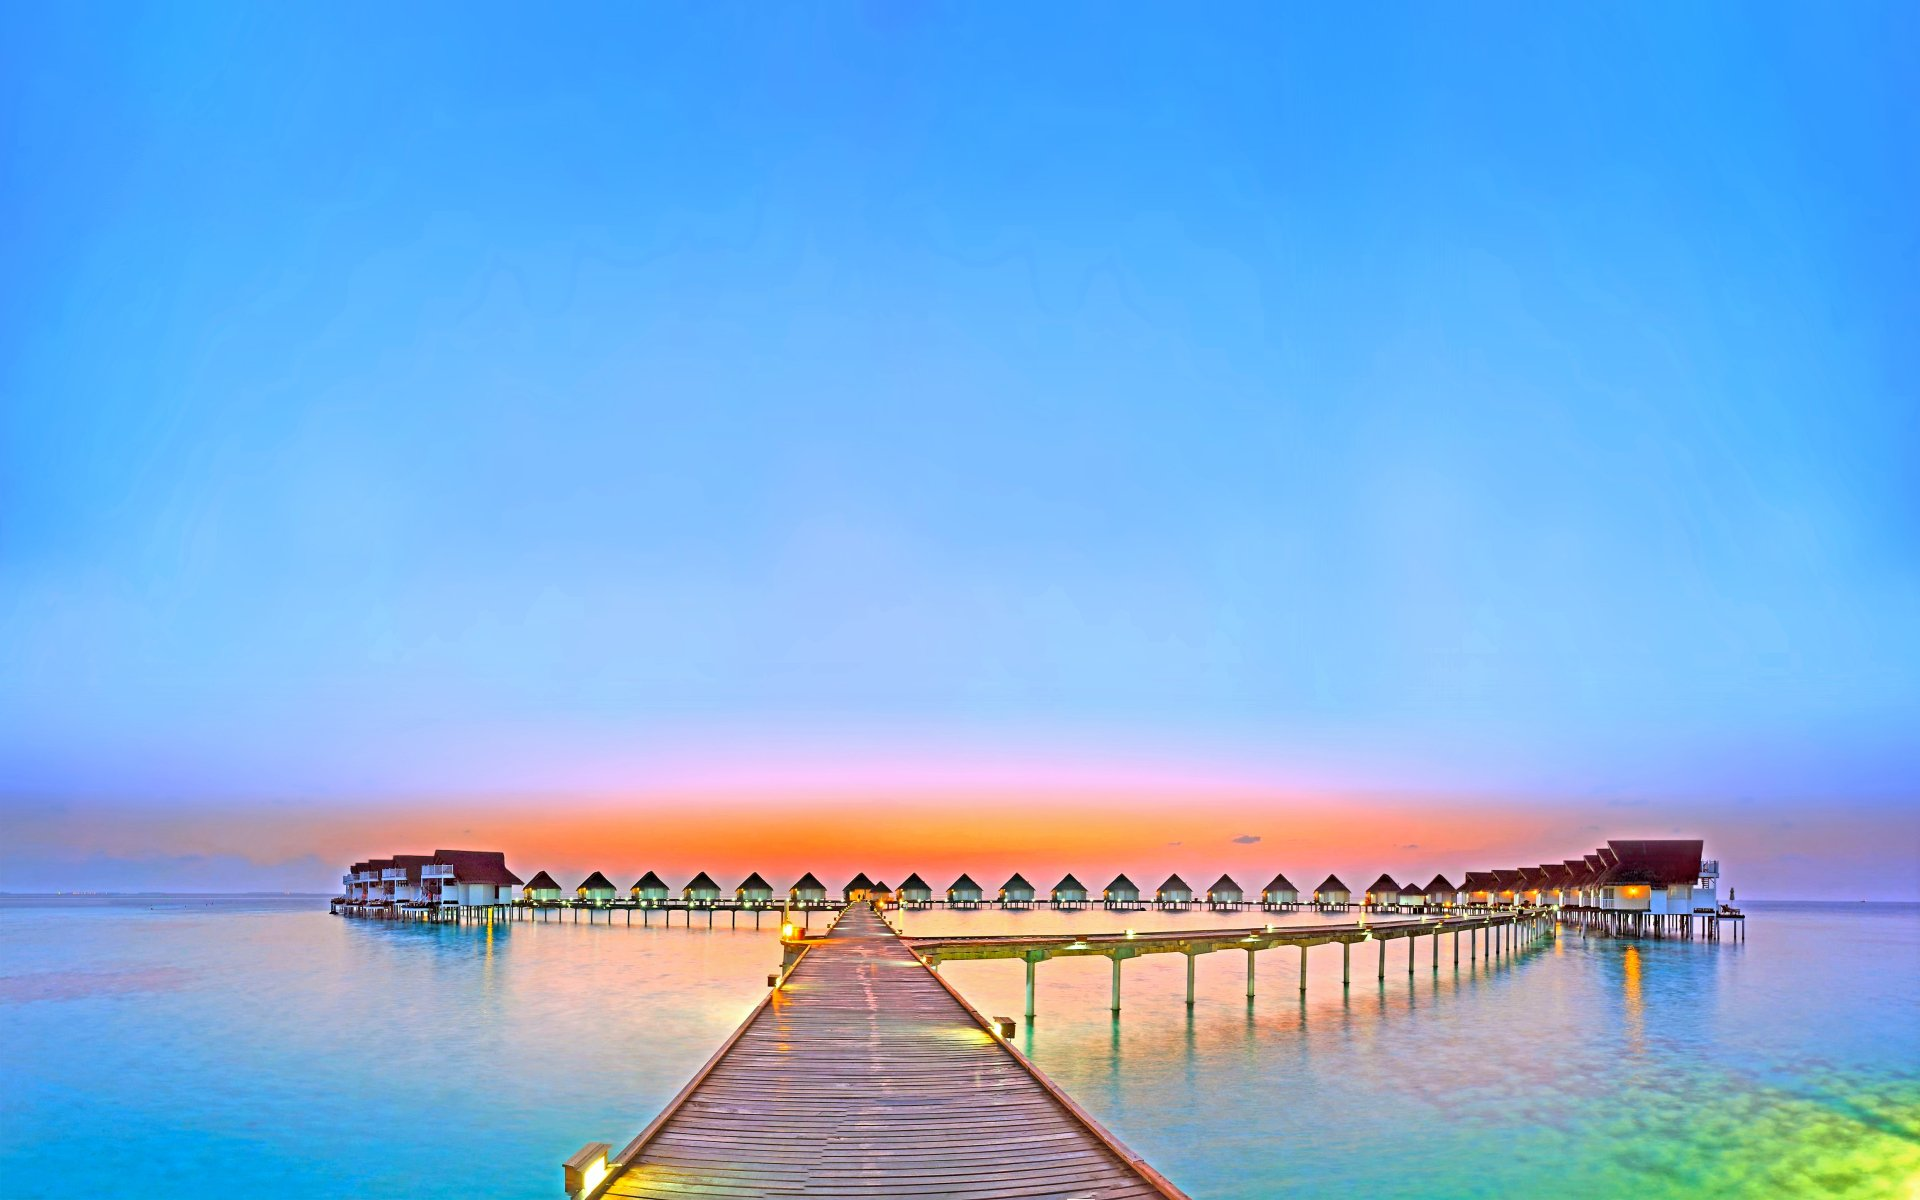 Man Made - Resort  Glow Ocean Colorful Holiday Maldives Horizon Scenic Sea Turquoise Sky Pier Wallpaper